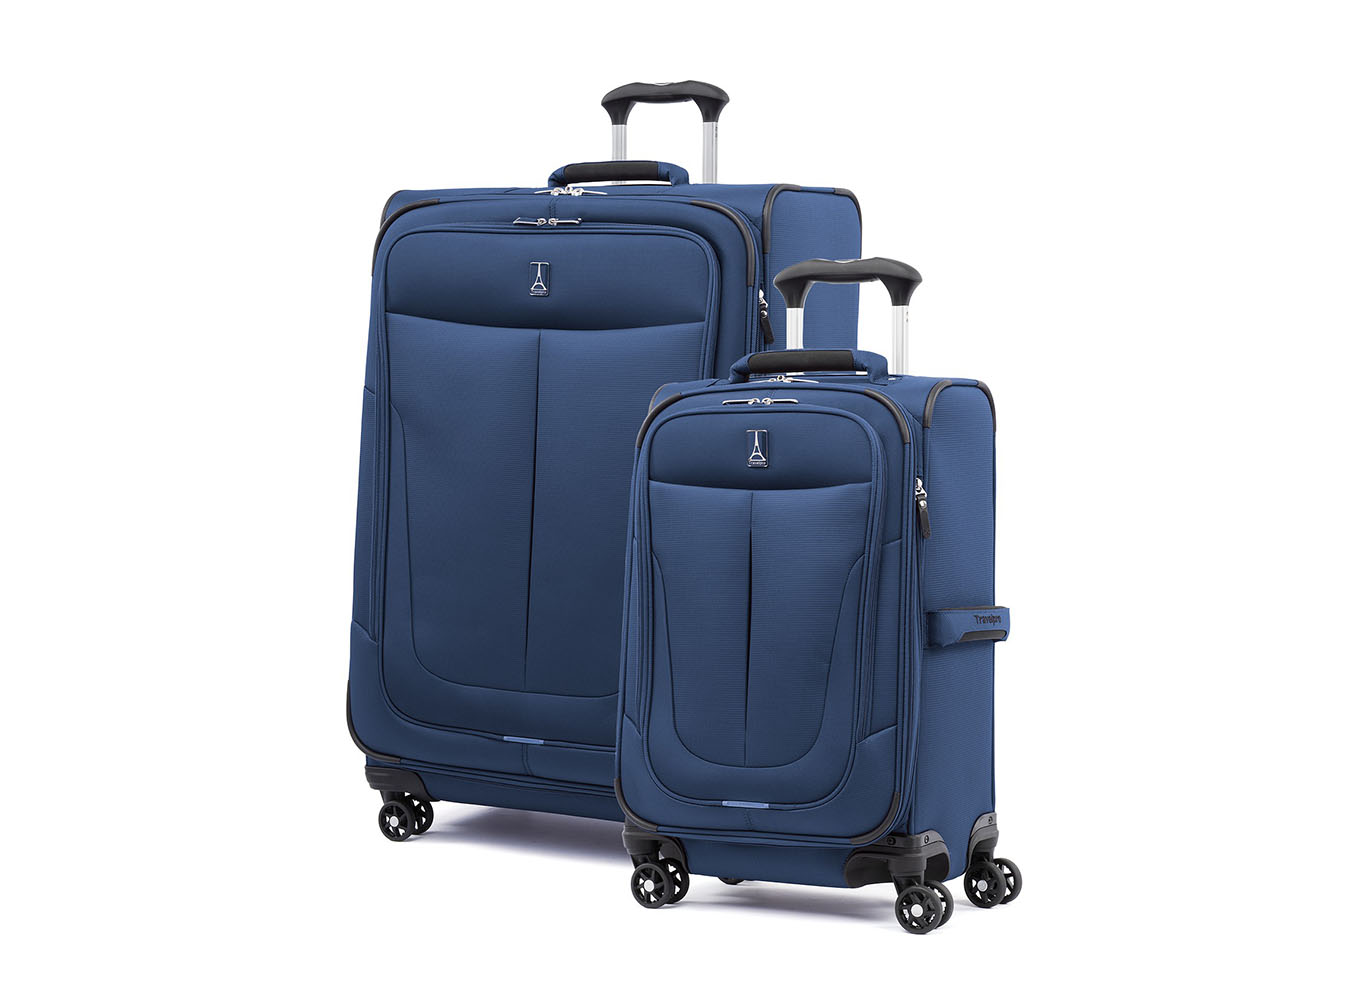 Travelpro Walkabout 4 Luggage Set